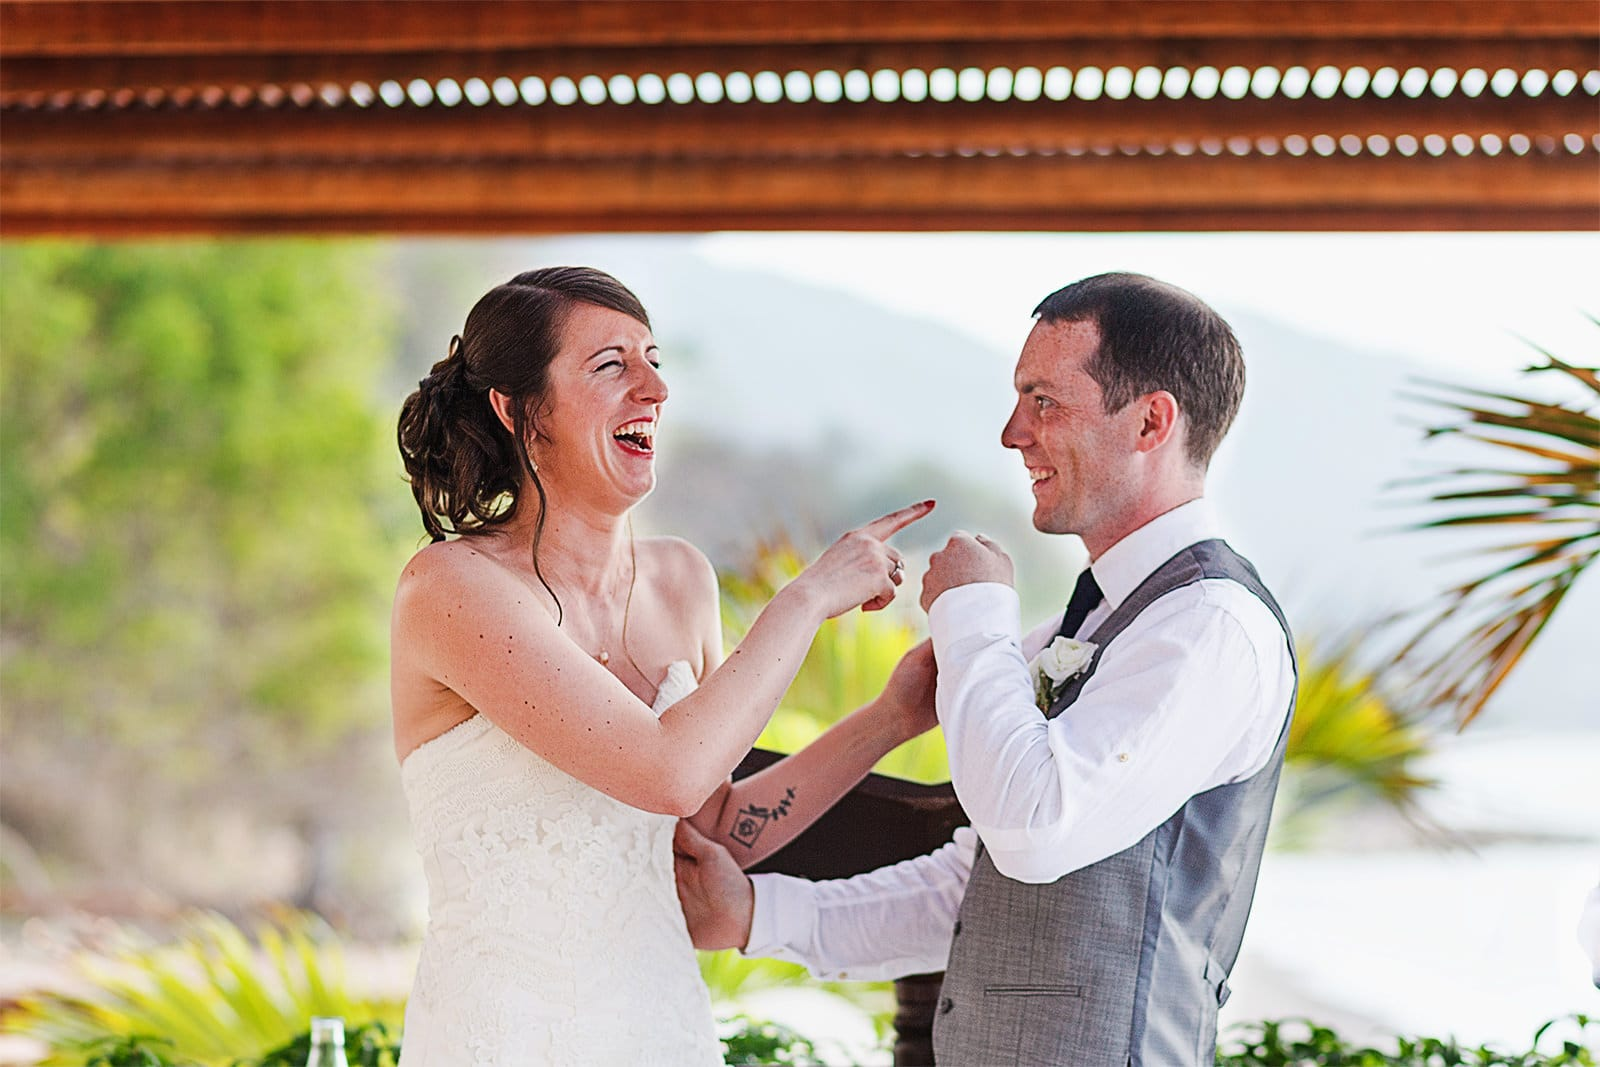 Bride laughs at groom after their first kiss for leaving lipstick on his mouth